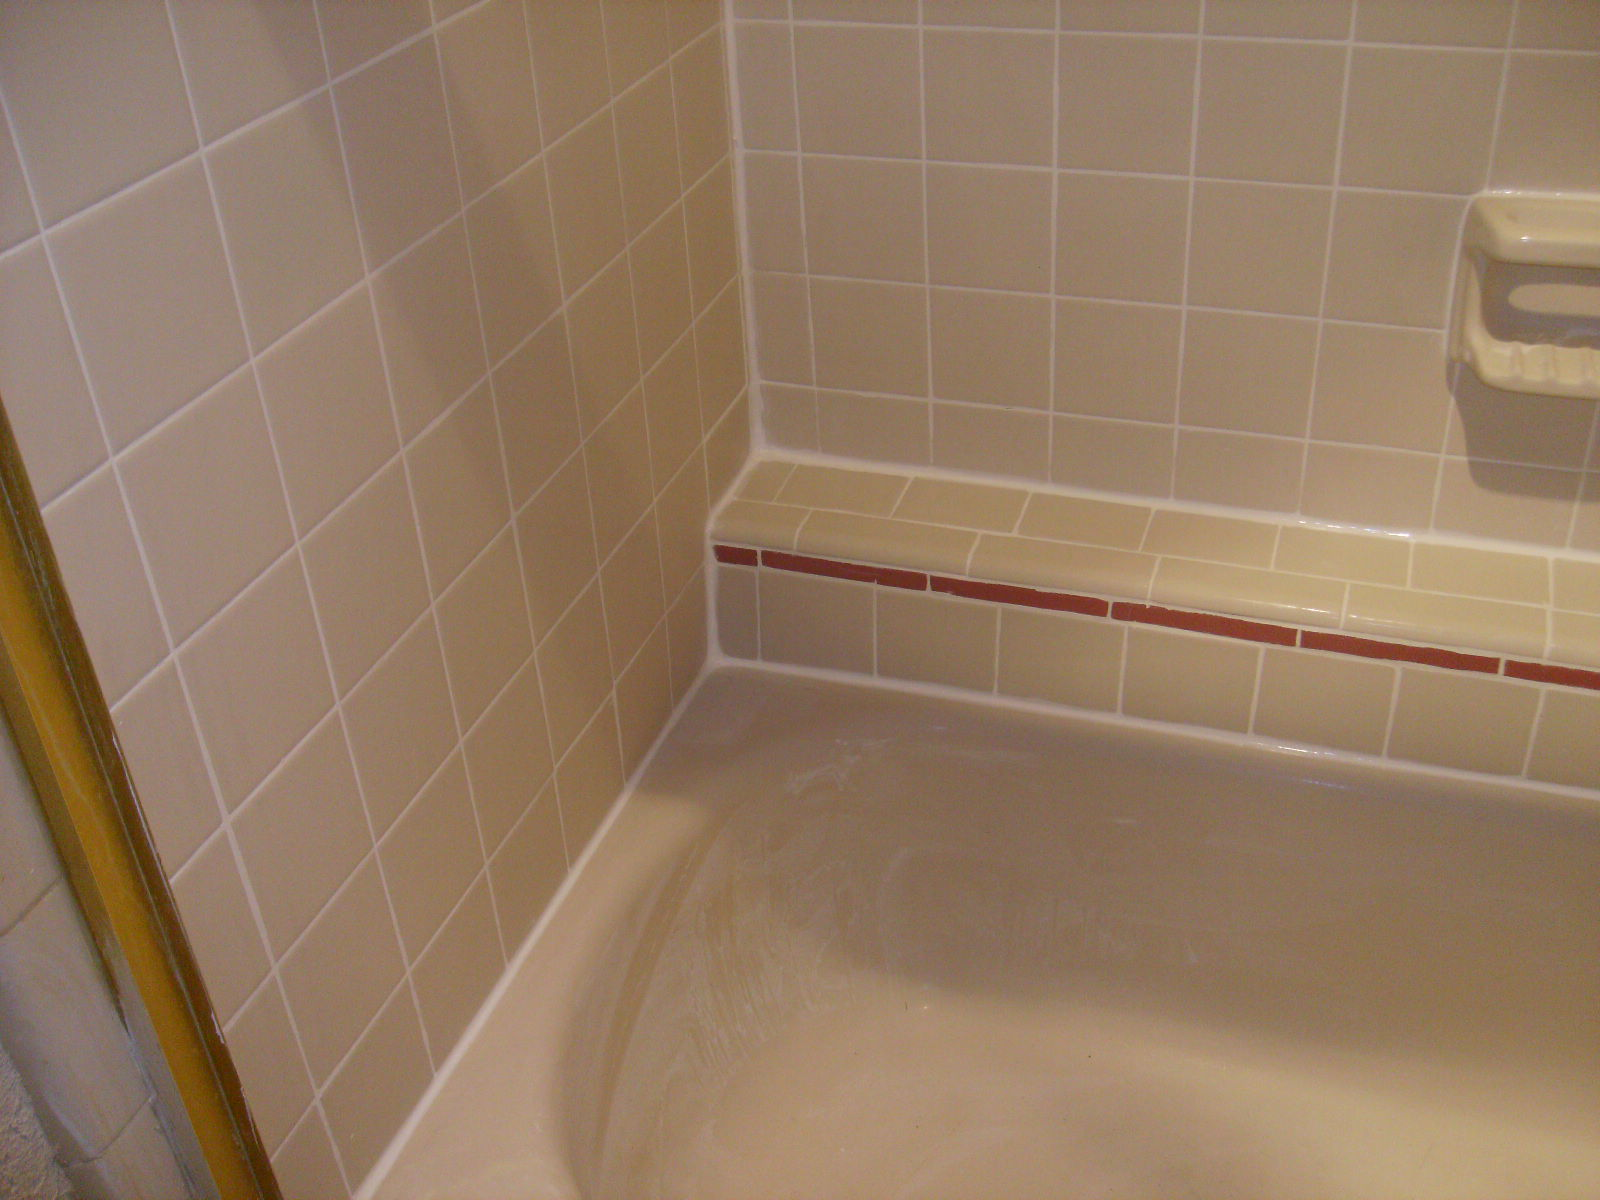 How To Clean Bathroom Tile Grout Grout Cleaning Tips And Ideas Confessions Of A Tile Setter